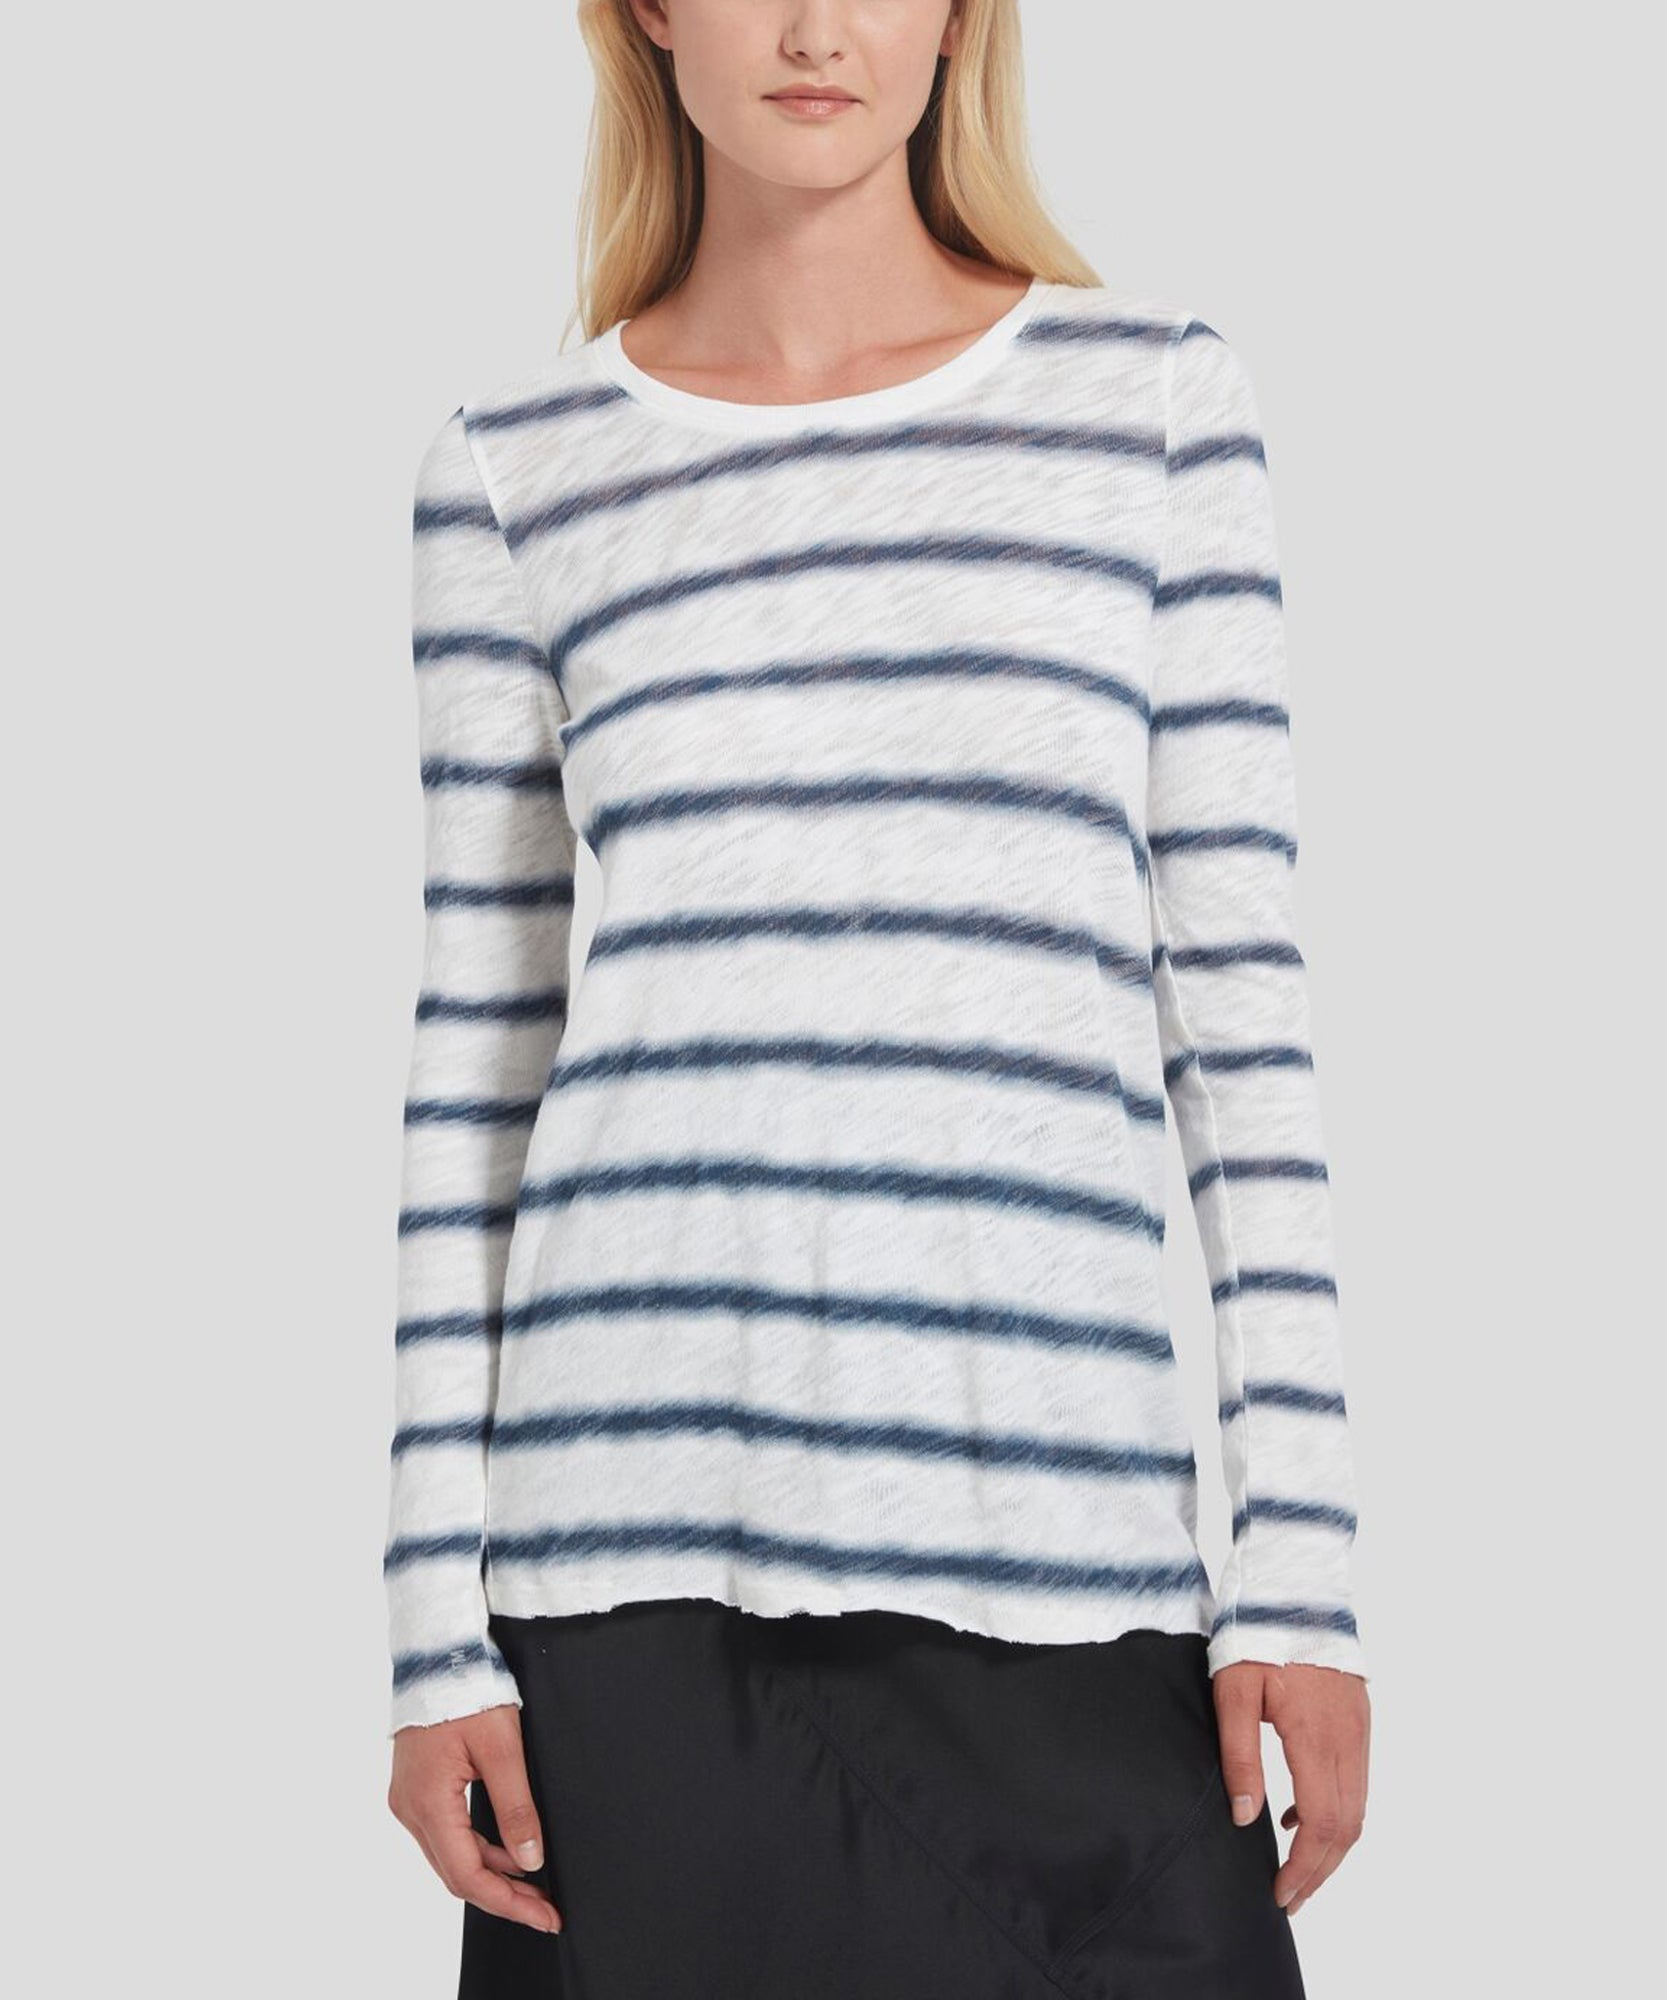 ATM Watermark Stripe Slub Jersey Long Sleeve Destroyed Wash Tee